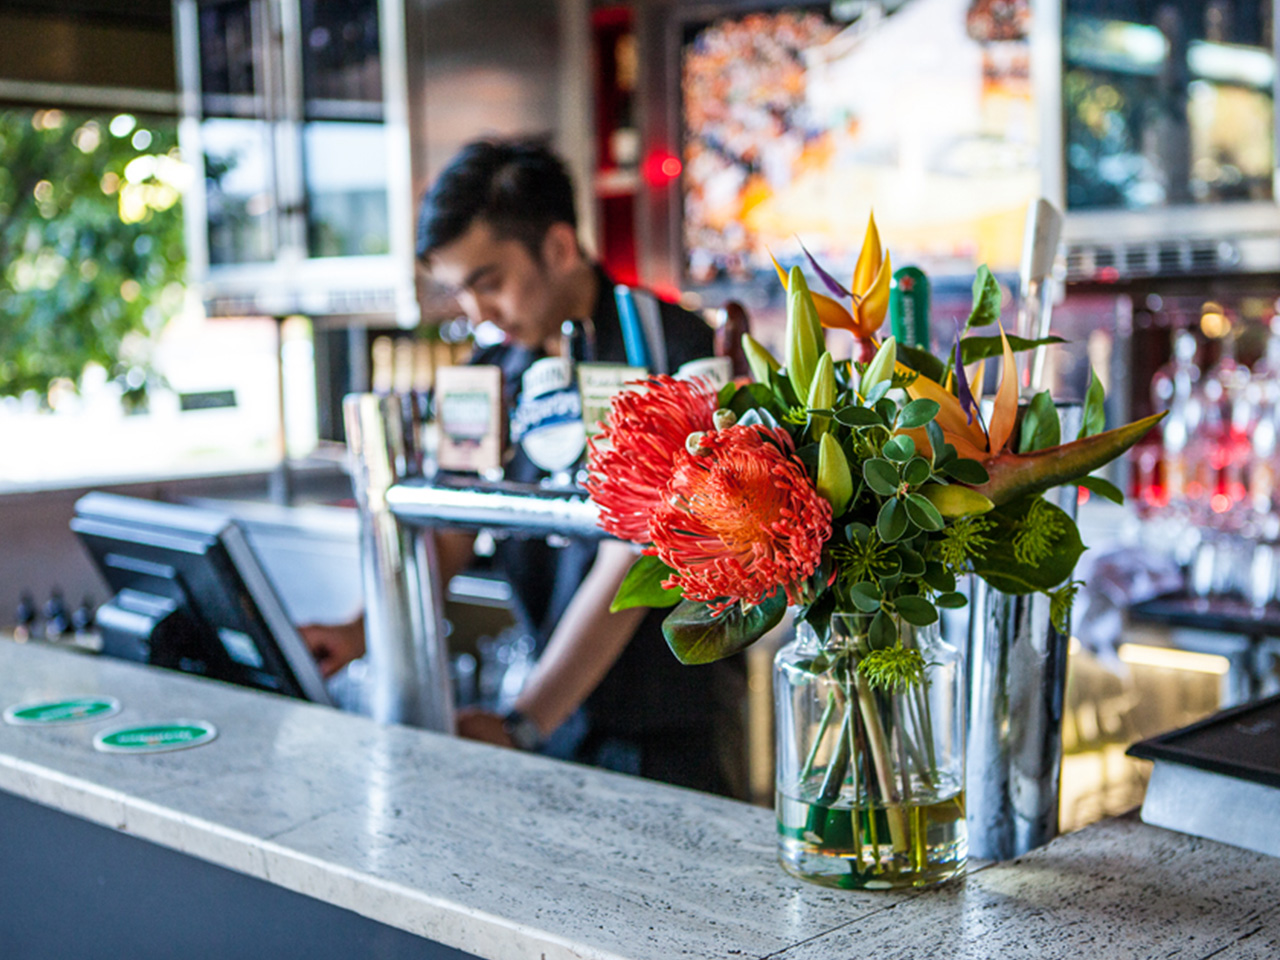 Bartender In The Mini Bar With Table Flower In A Vase